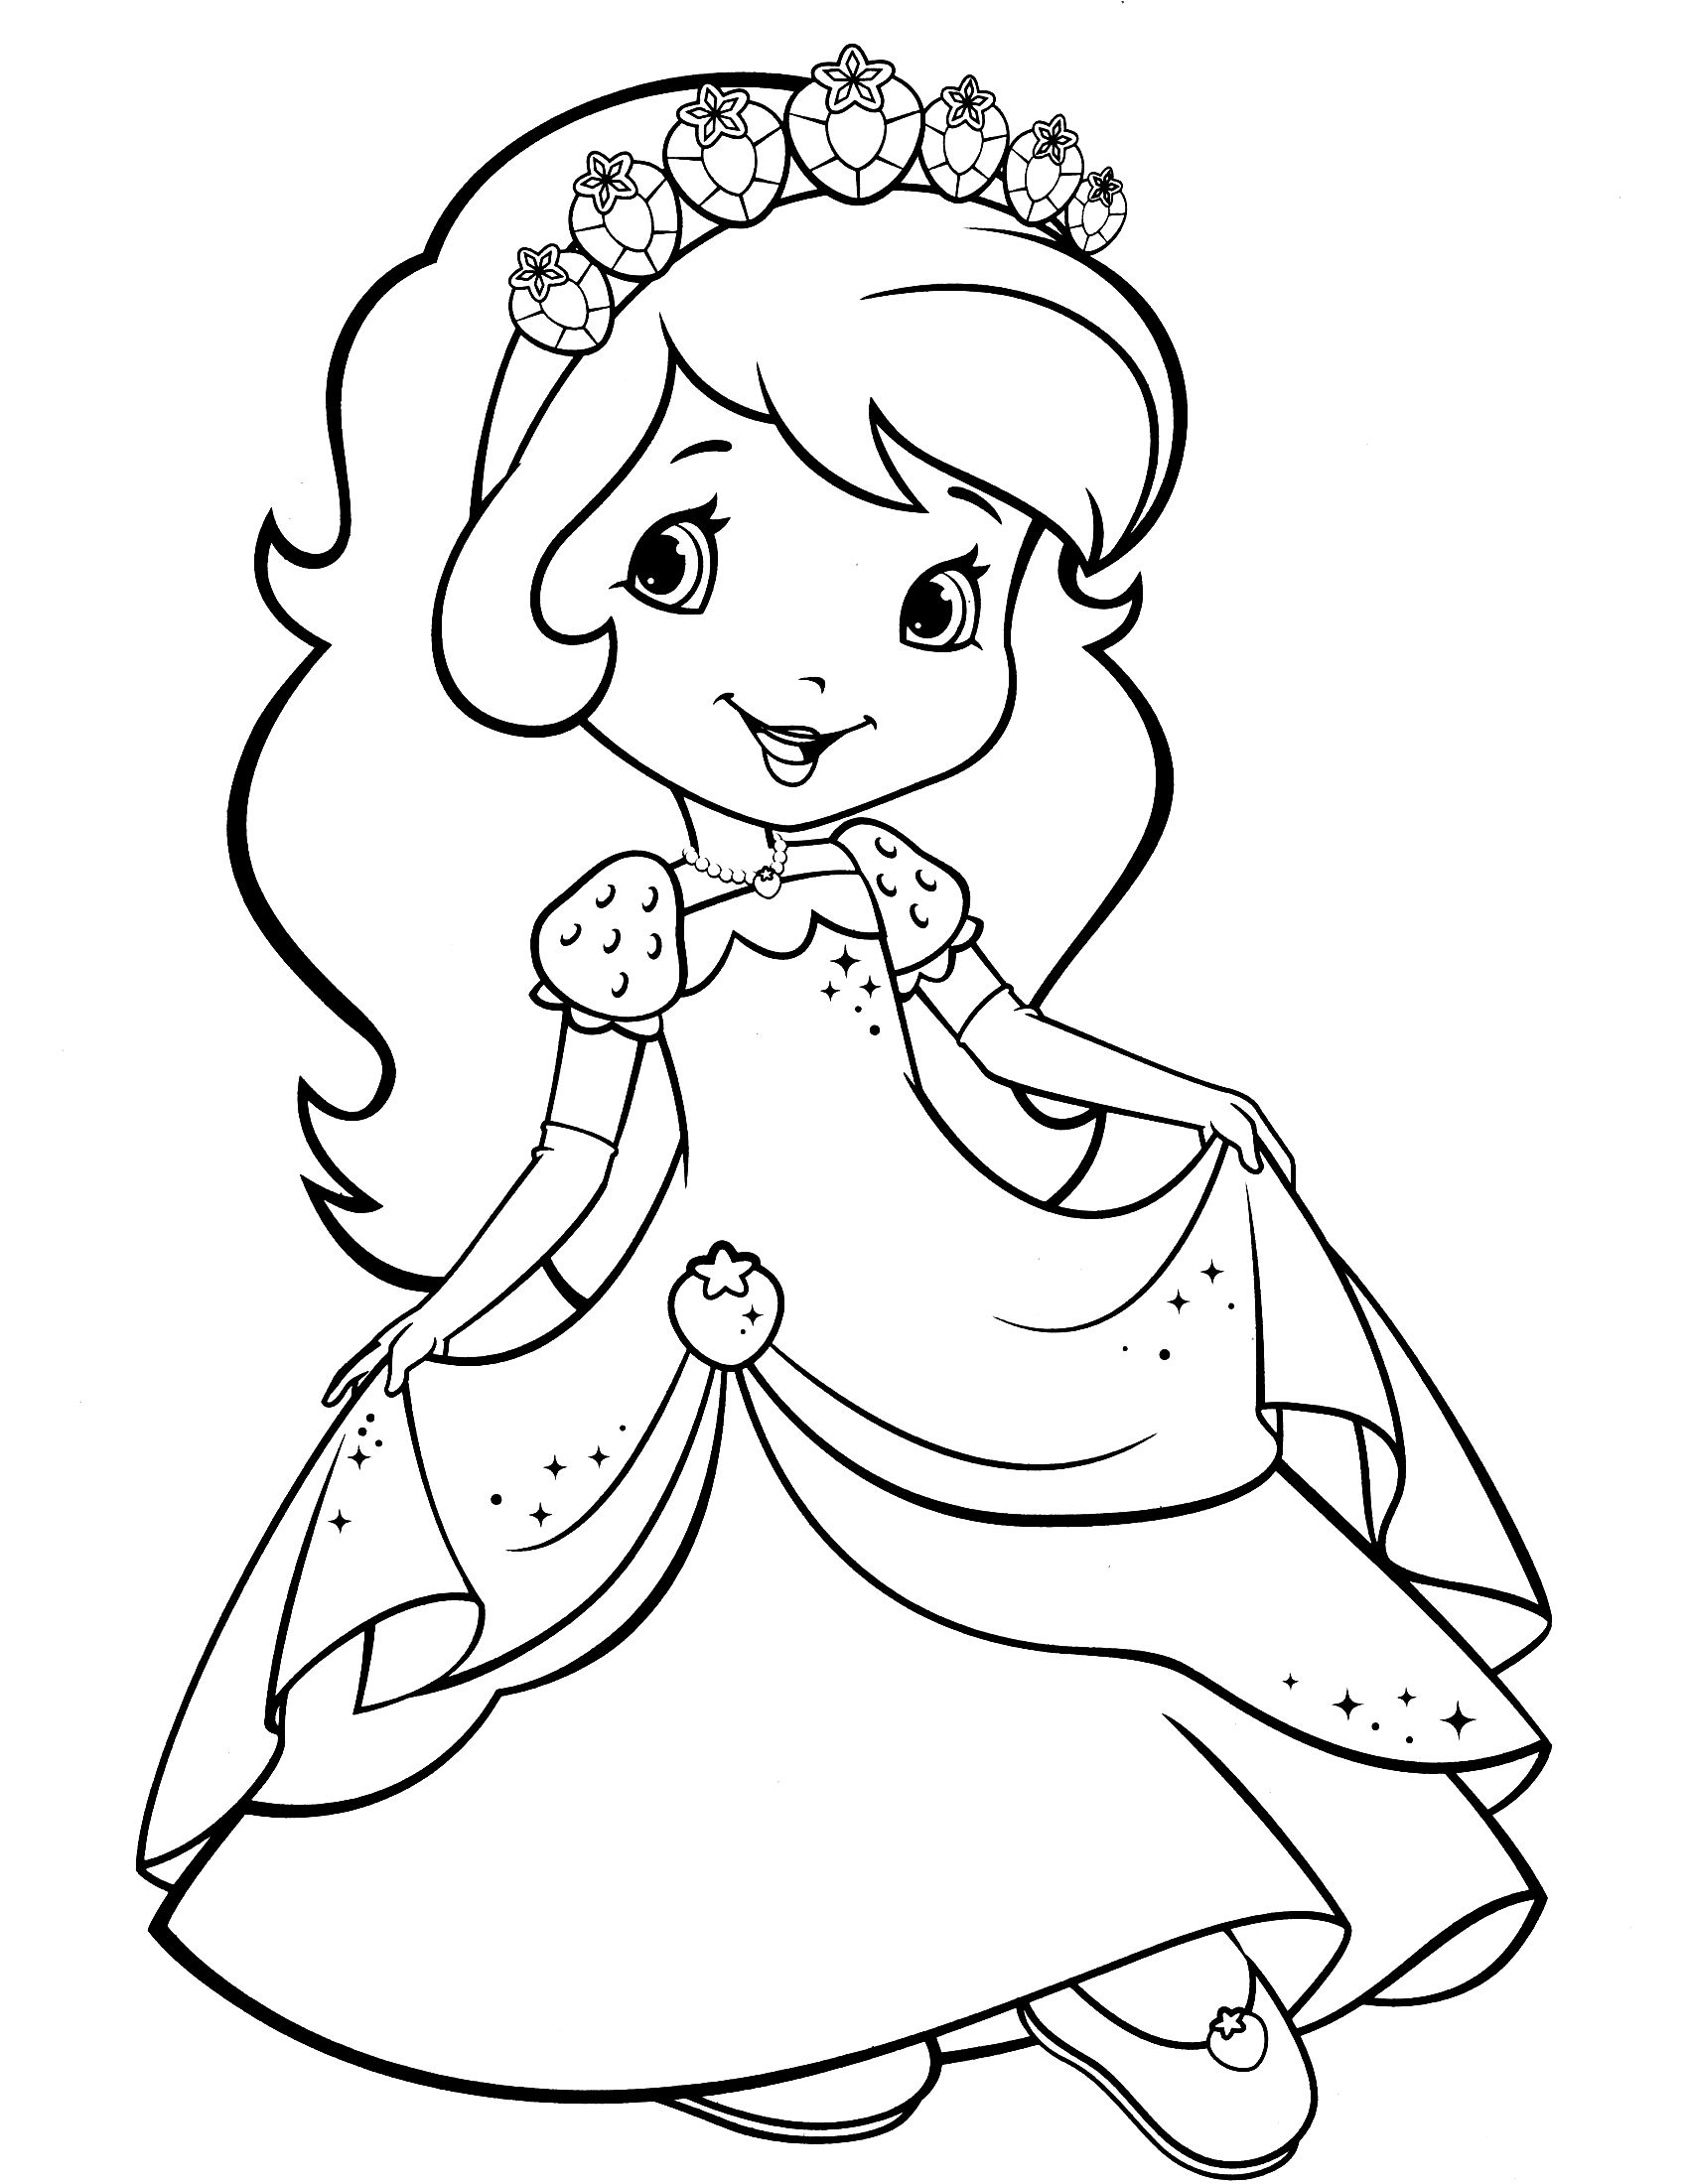 strawberry shortcake coloring pages for kids baby strawberry shortcake cute coloring pages coloring shortcake coloring kids strawberry for pages